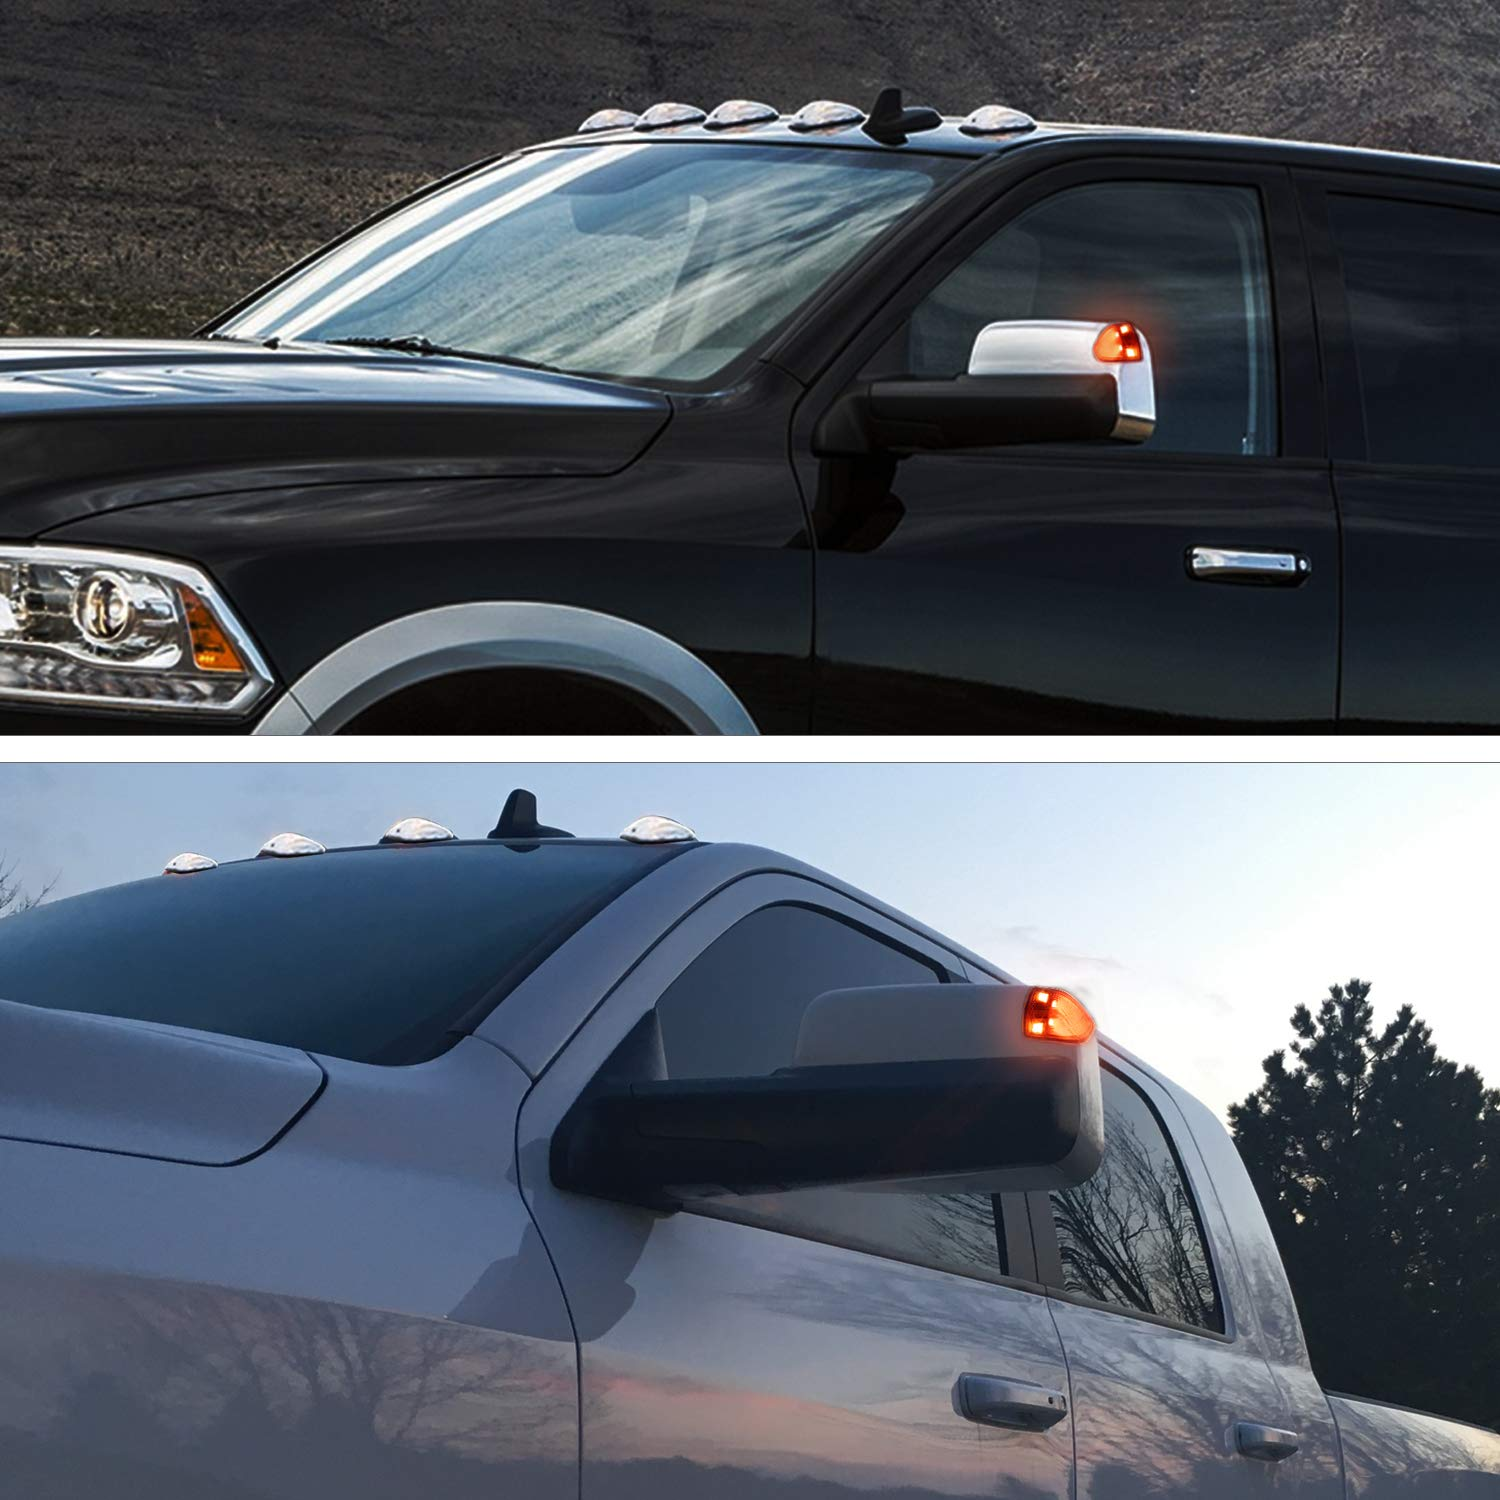 Pack of 2 HERCOO LED Side Mirror Turn Signal Light Left and Right Lamps Clear Cover Lens for 68302828AA 68302829AA Compatible with 2010-2018 Dodge Ram 1500 2500 3500 4500 5500